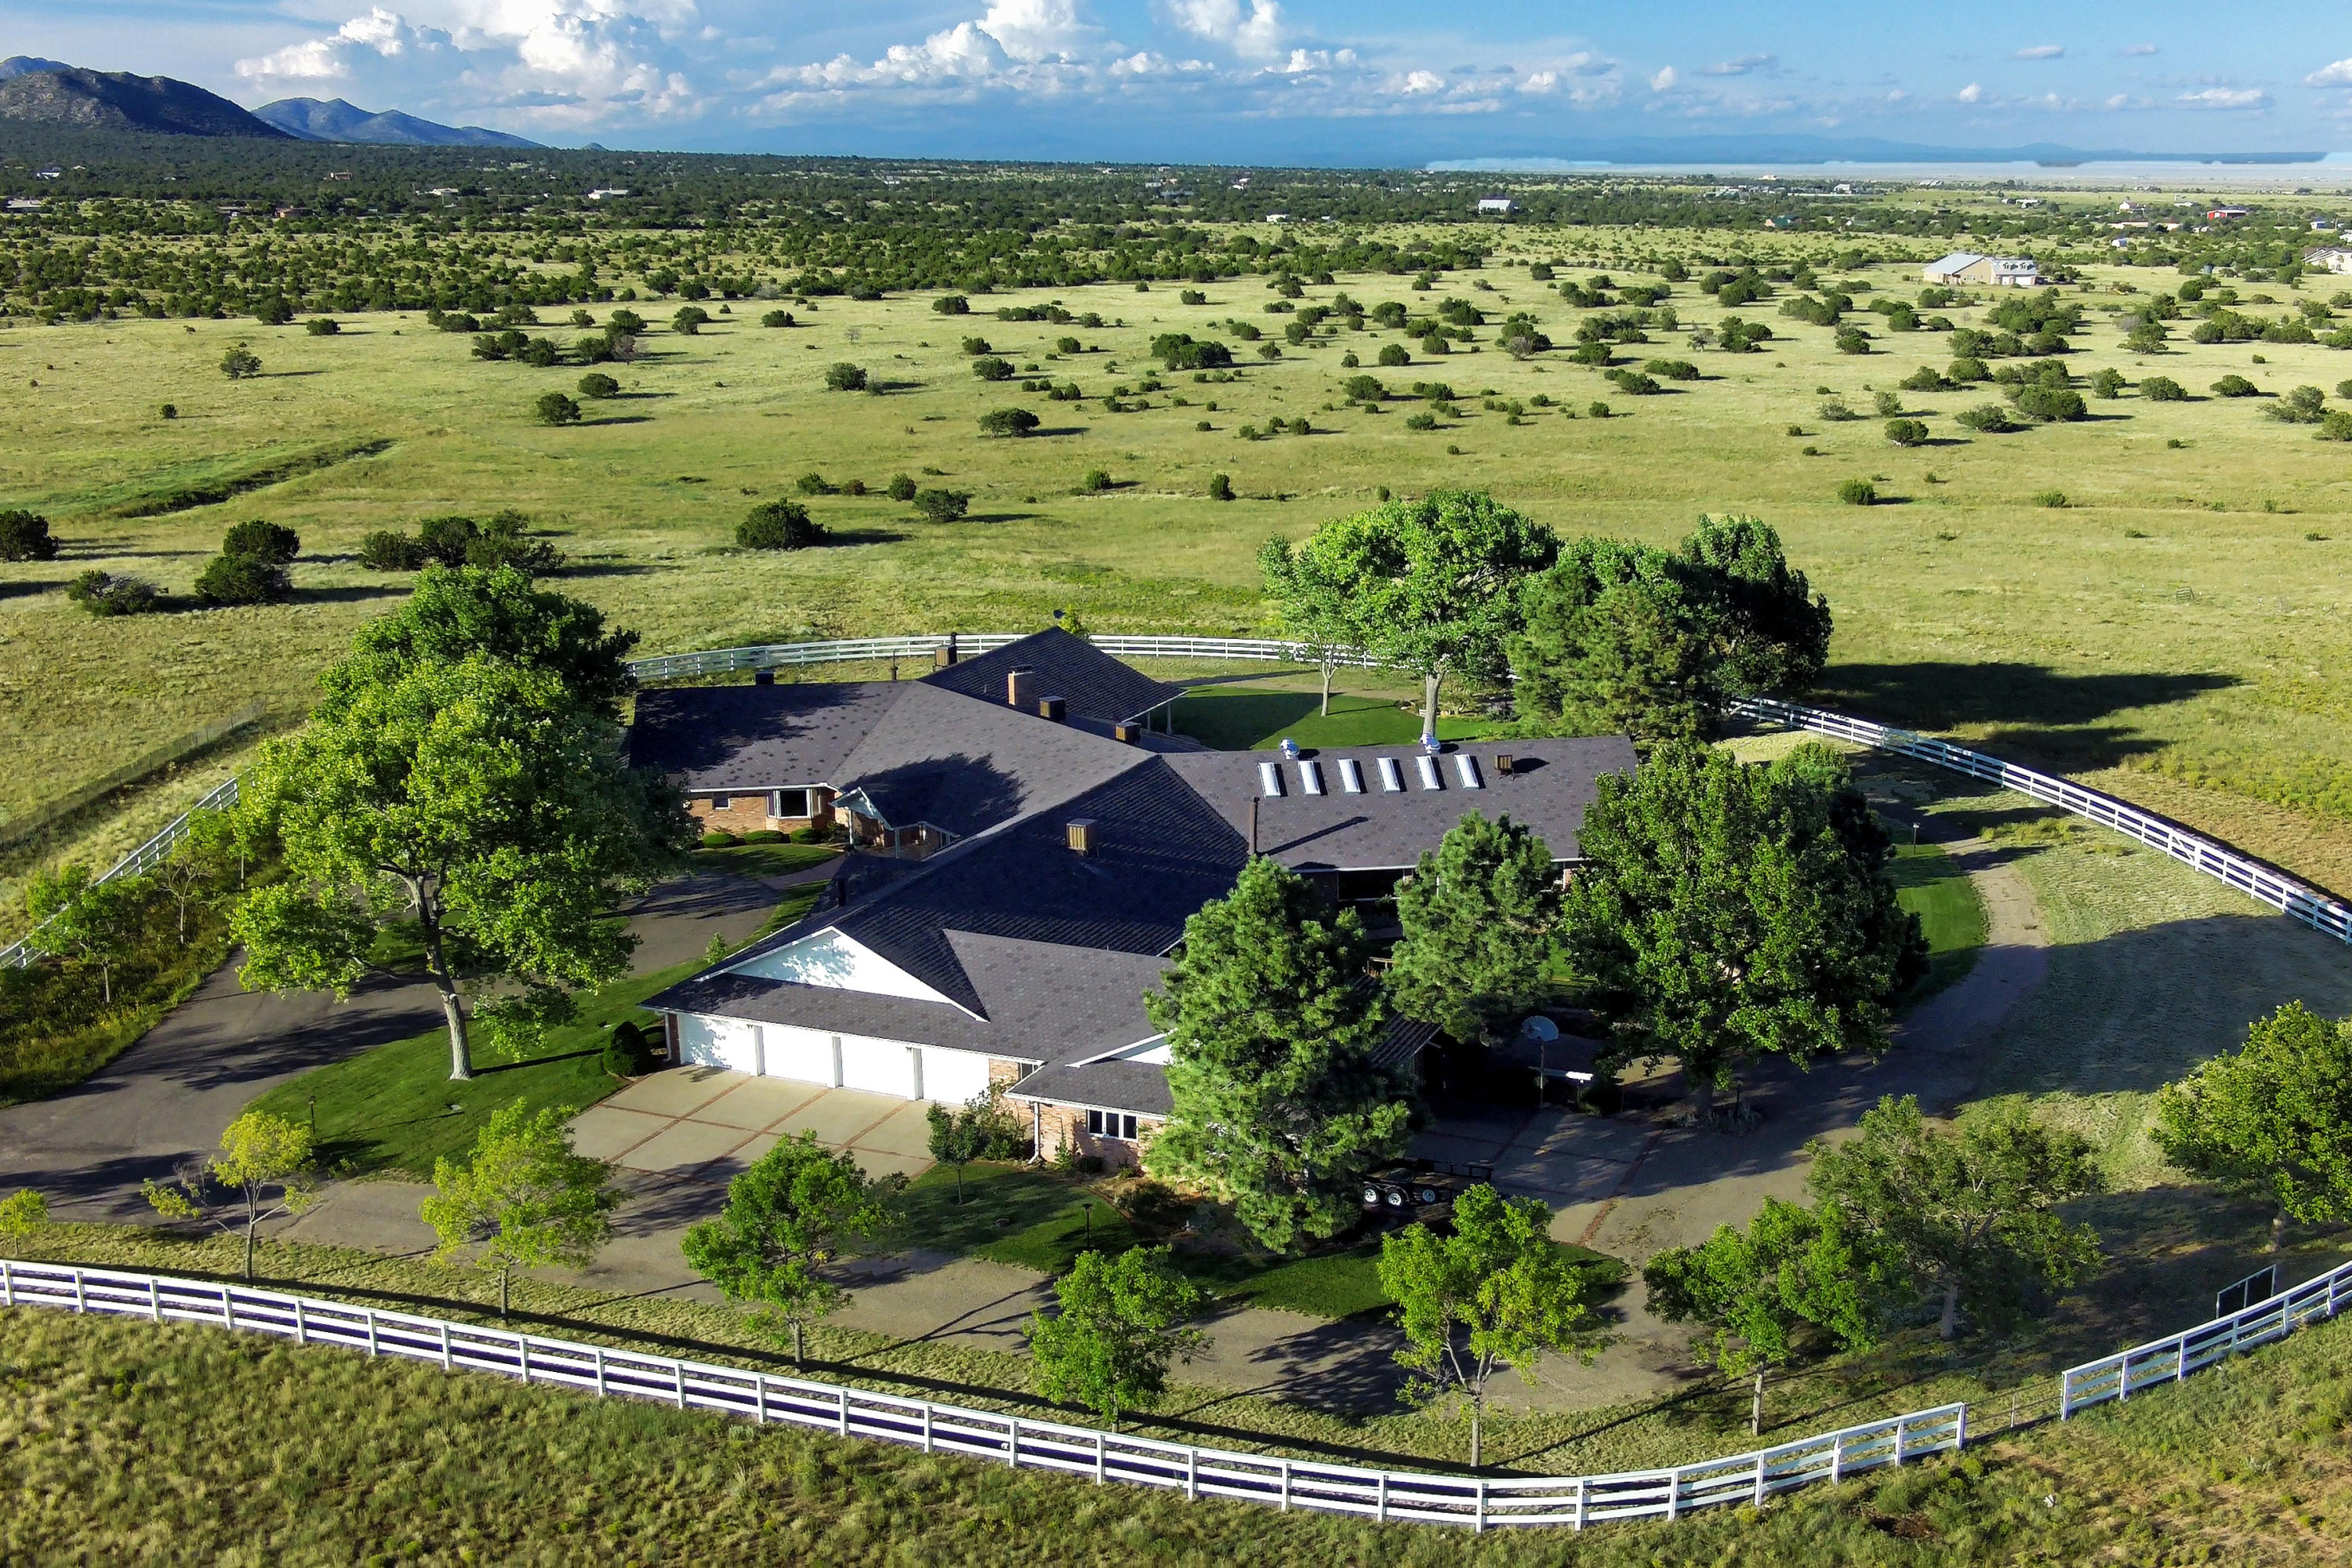 Where the mountains meet the Great Plains, this charming equestrian property know as The Starlight Ranch has captured the essence of the Wild West, 6 Bedrooms, 10 baths. Edgewoods Premier Executive Ranch Home, the entire property is on 85 completely fenced acres which include an 11,900 sq.ft. single-level bricked home with 7 heated, direct entry garages and 2 carports. Features include new solar panels; Elec bill is around $25 per month, Super Fast fiber high-speed internet, 2 septic systems, & a gated entry with a security system in place. Paved Tree Lined drive. A heated, indoor upgraded 20'x40' Gunite pool with Entertainment Dream Room. 4 Stall Barnmaster Barn with Runs & Arena. Would be an Excellent Bed/Breakfast Ranch. Make your dreams come true here!